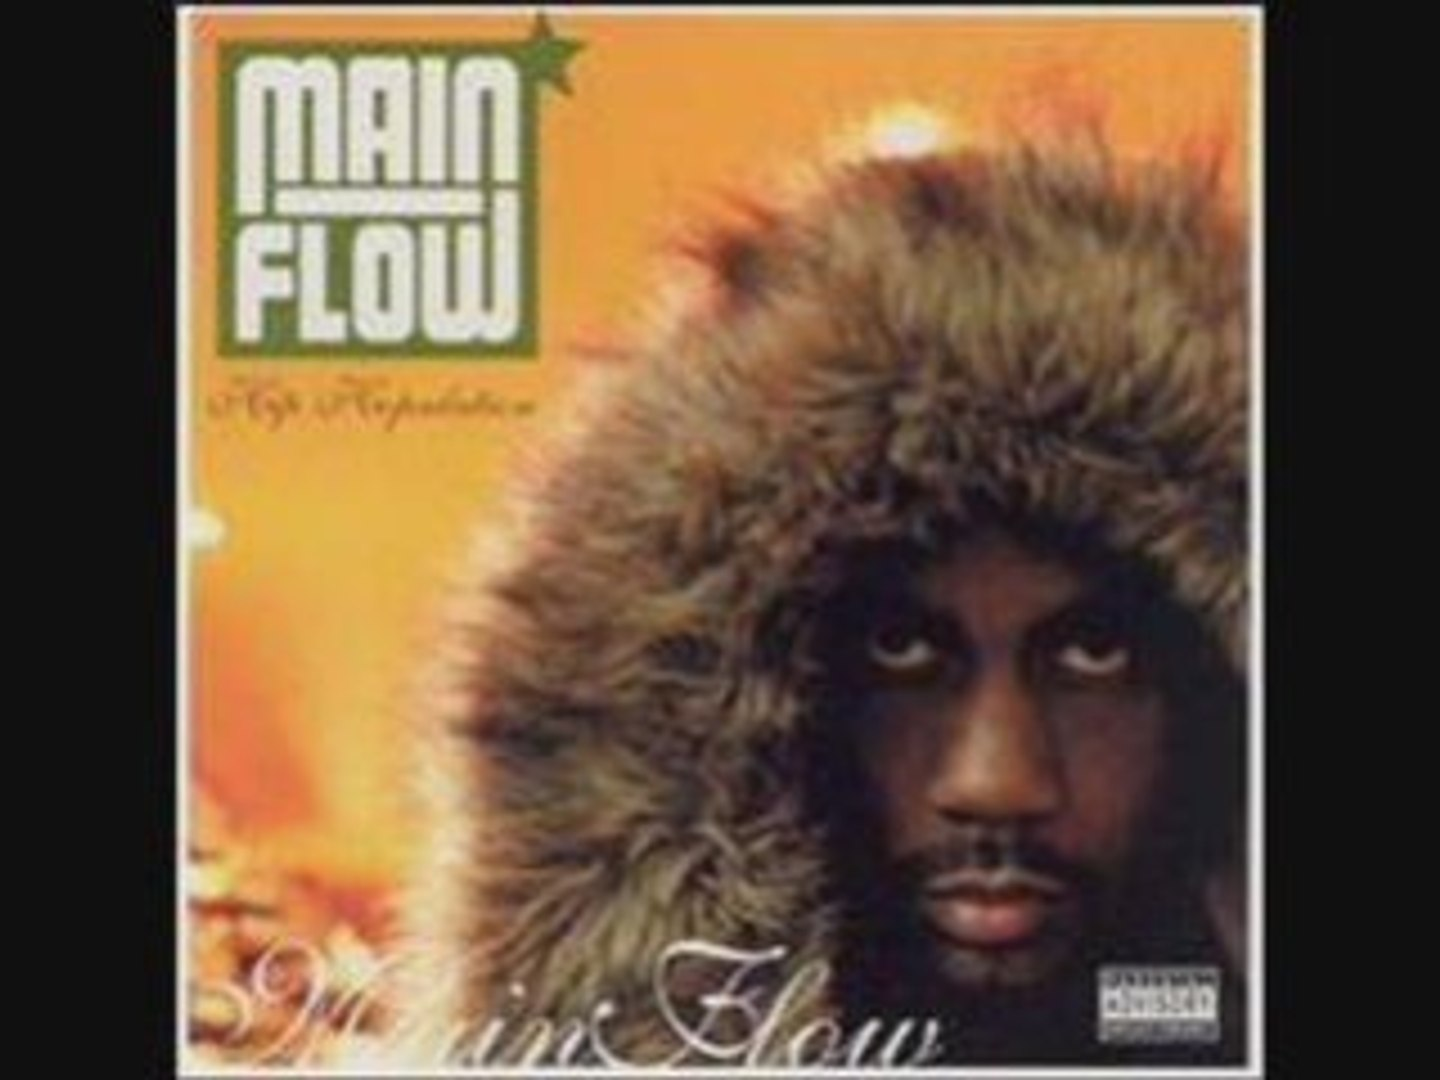 MAIN FLOW - Hip hop worth dying for (feat talib kweli)